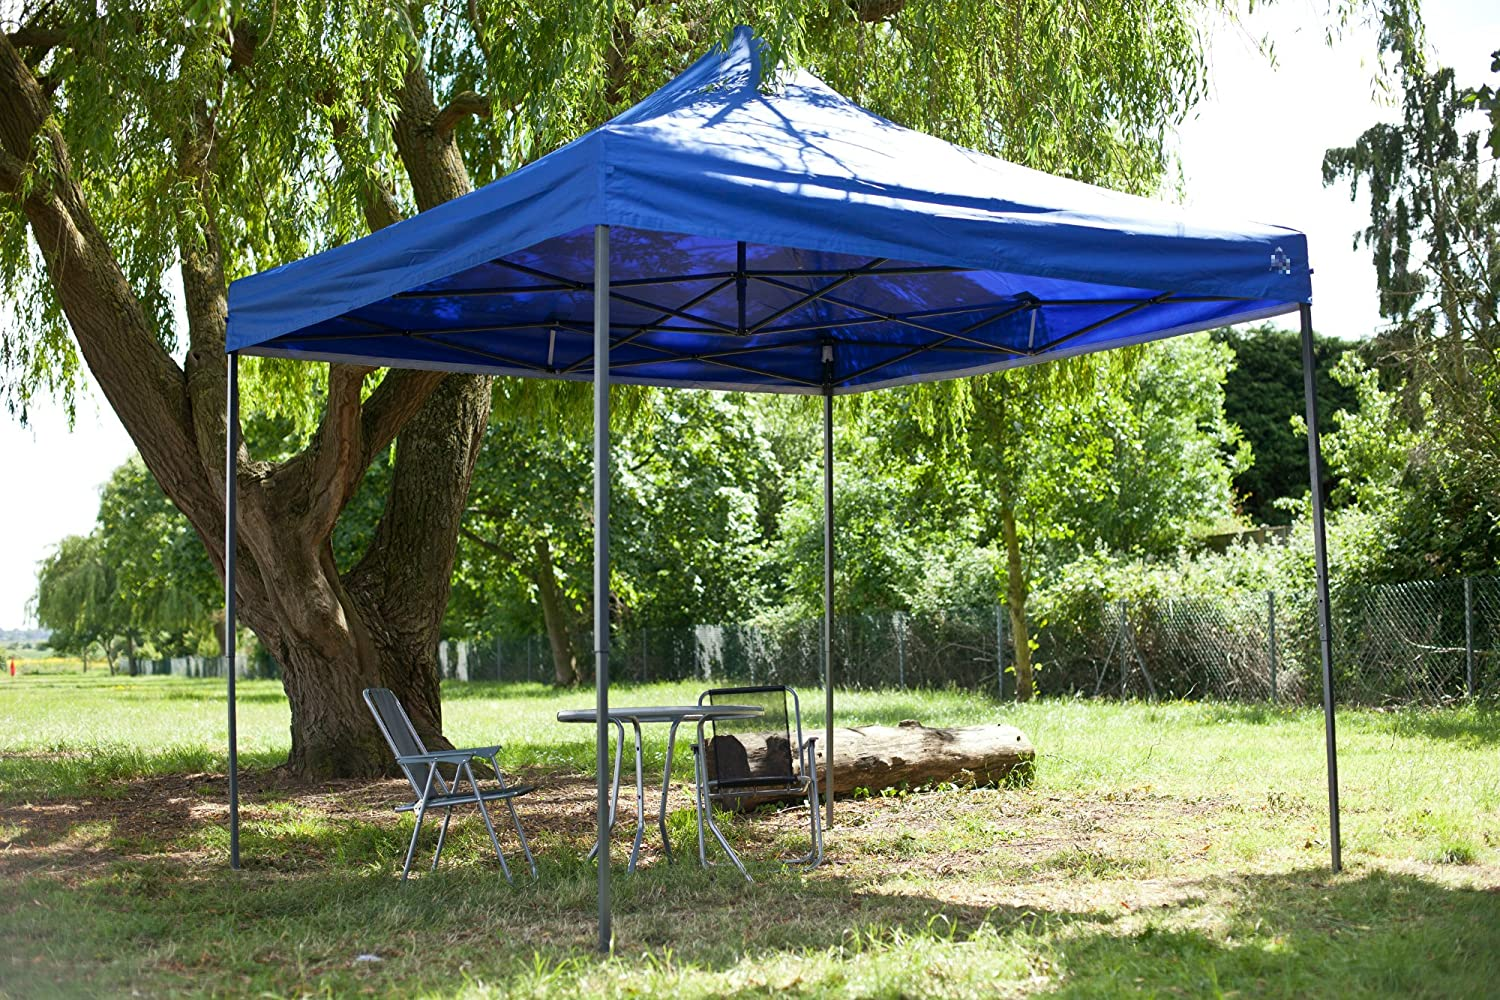 All Seasons Gazebos Carpa de 3 x 3 m, Resistente, Totalmente Impermeable, Desmontable, con Pesos en Las Patas: Amazon.es: Jardín